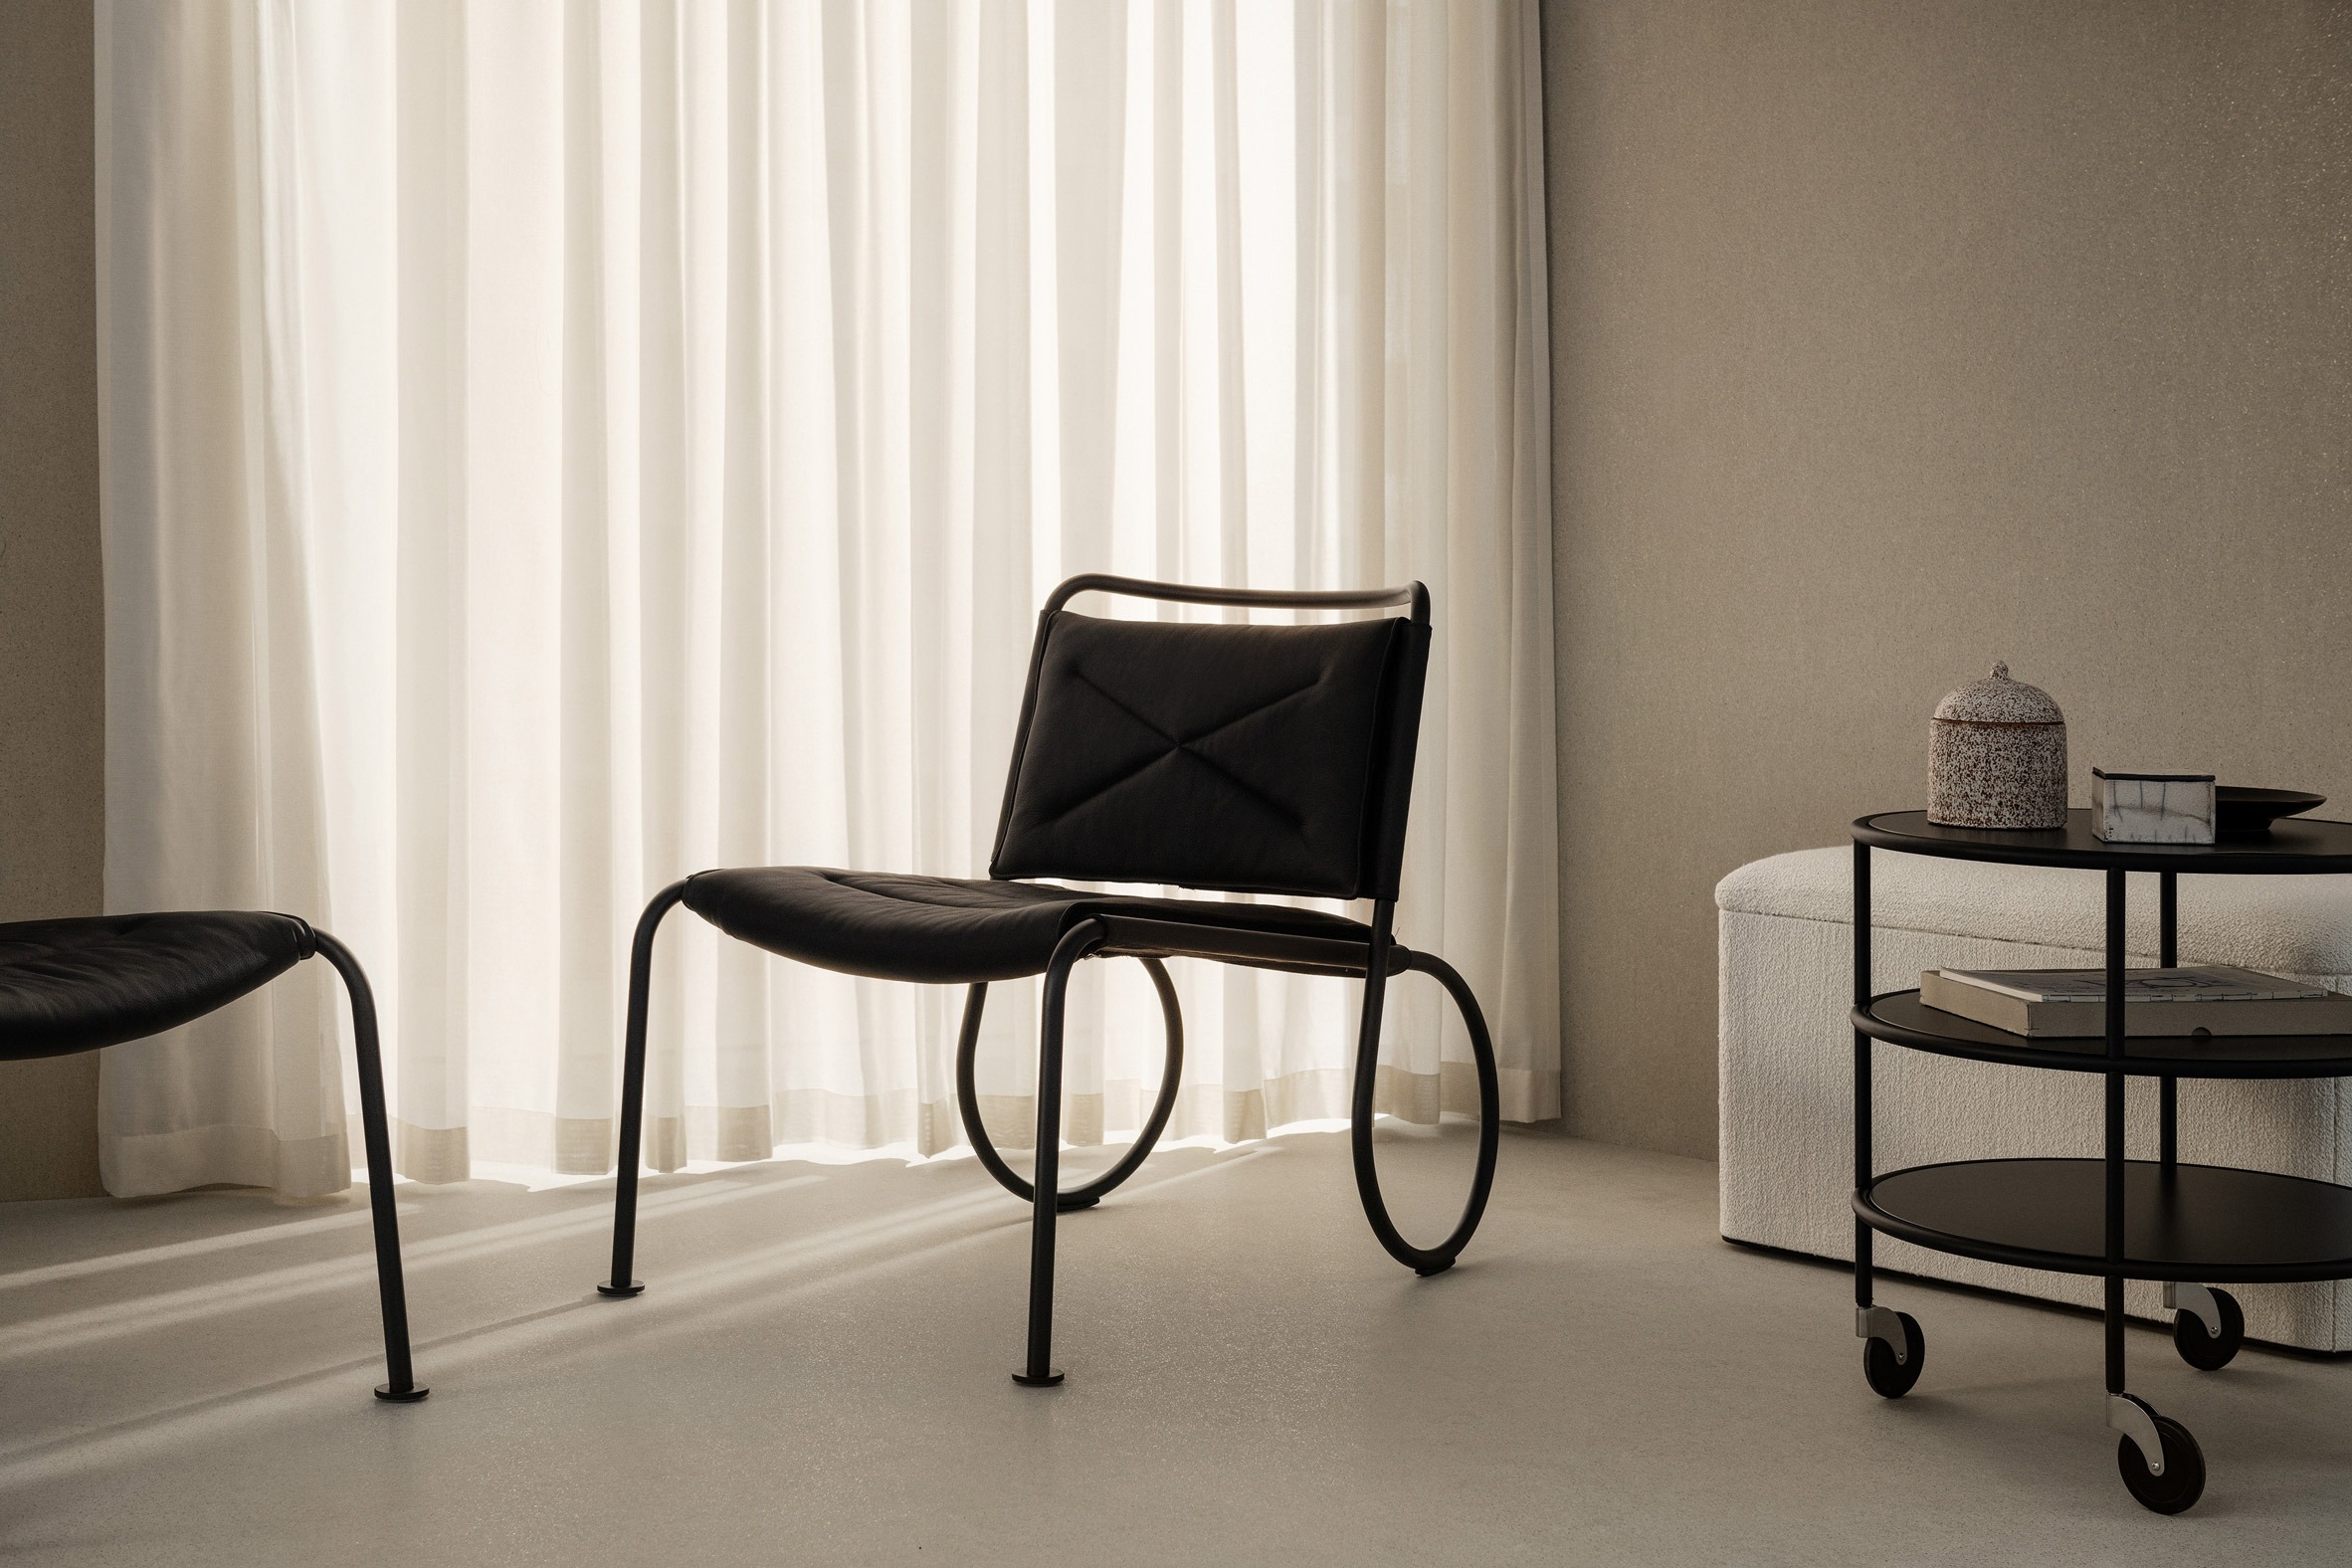 All-black Corso chair by Lammhults in an interior